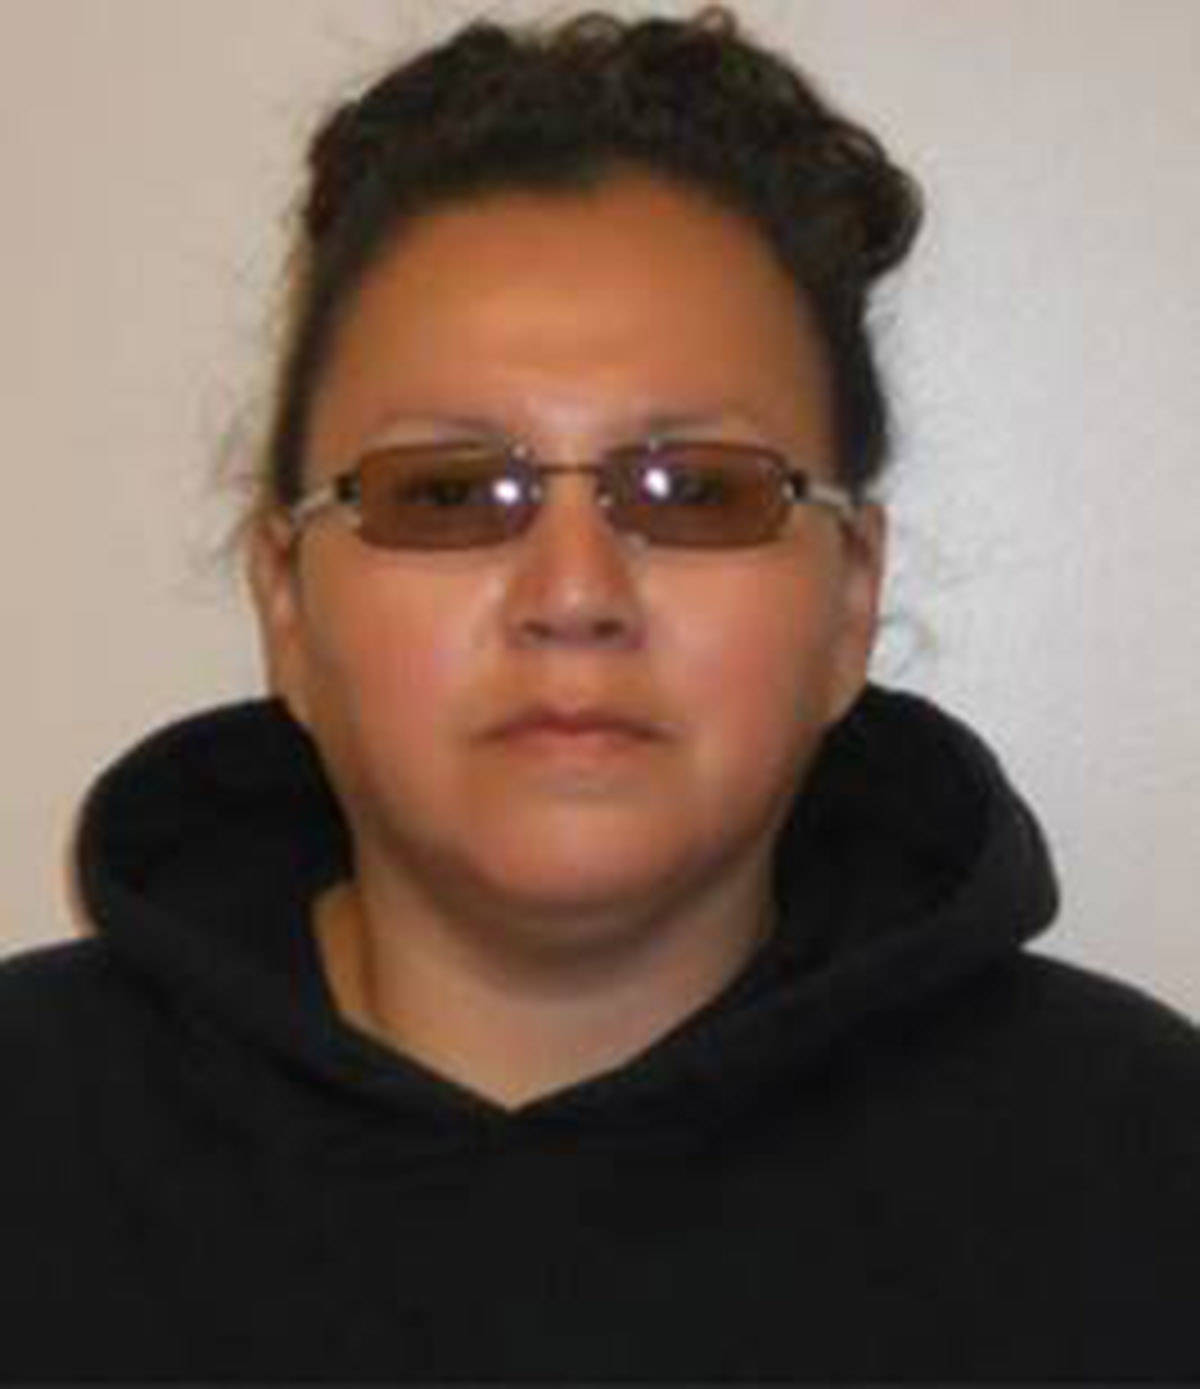 """Name: QUEWEZANCE, Nerissa Age: 46 Height: 5'7"""" ft Weight: 155 lbs Hair: Brown Eyes: Brown Wanted: Second Degree Murder, Assault and Obstruction. Warrant in effect: February 4, 2021 Parole Jurisdiction: New Westminster, B.C."""